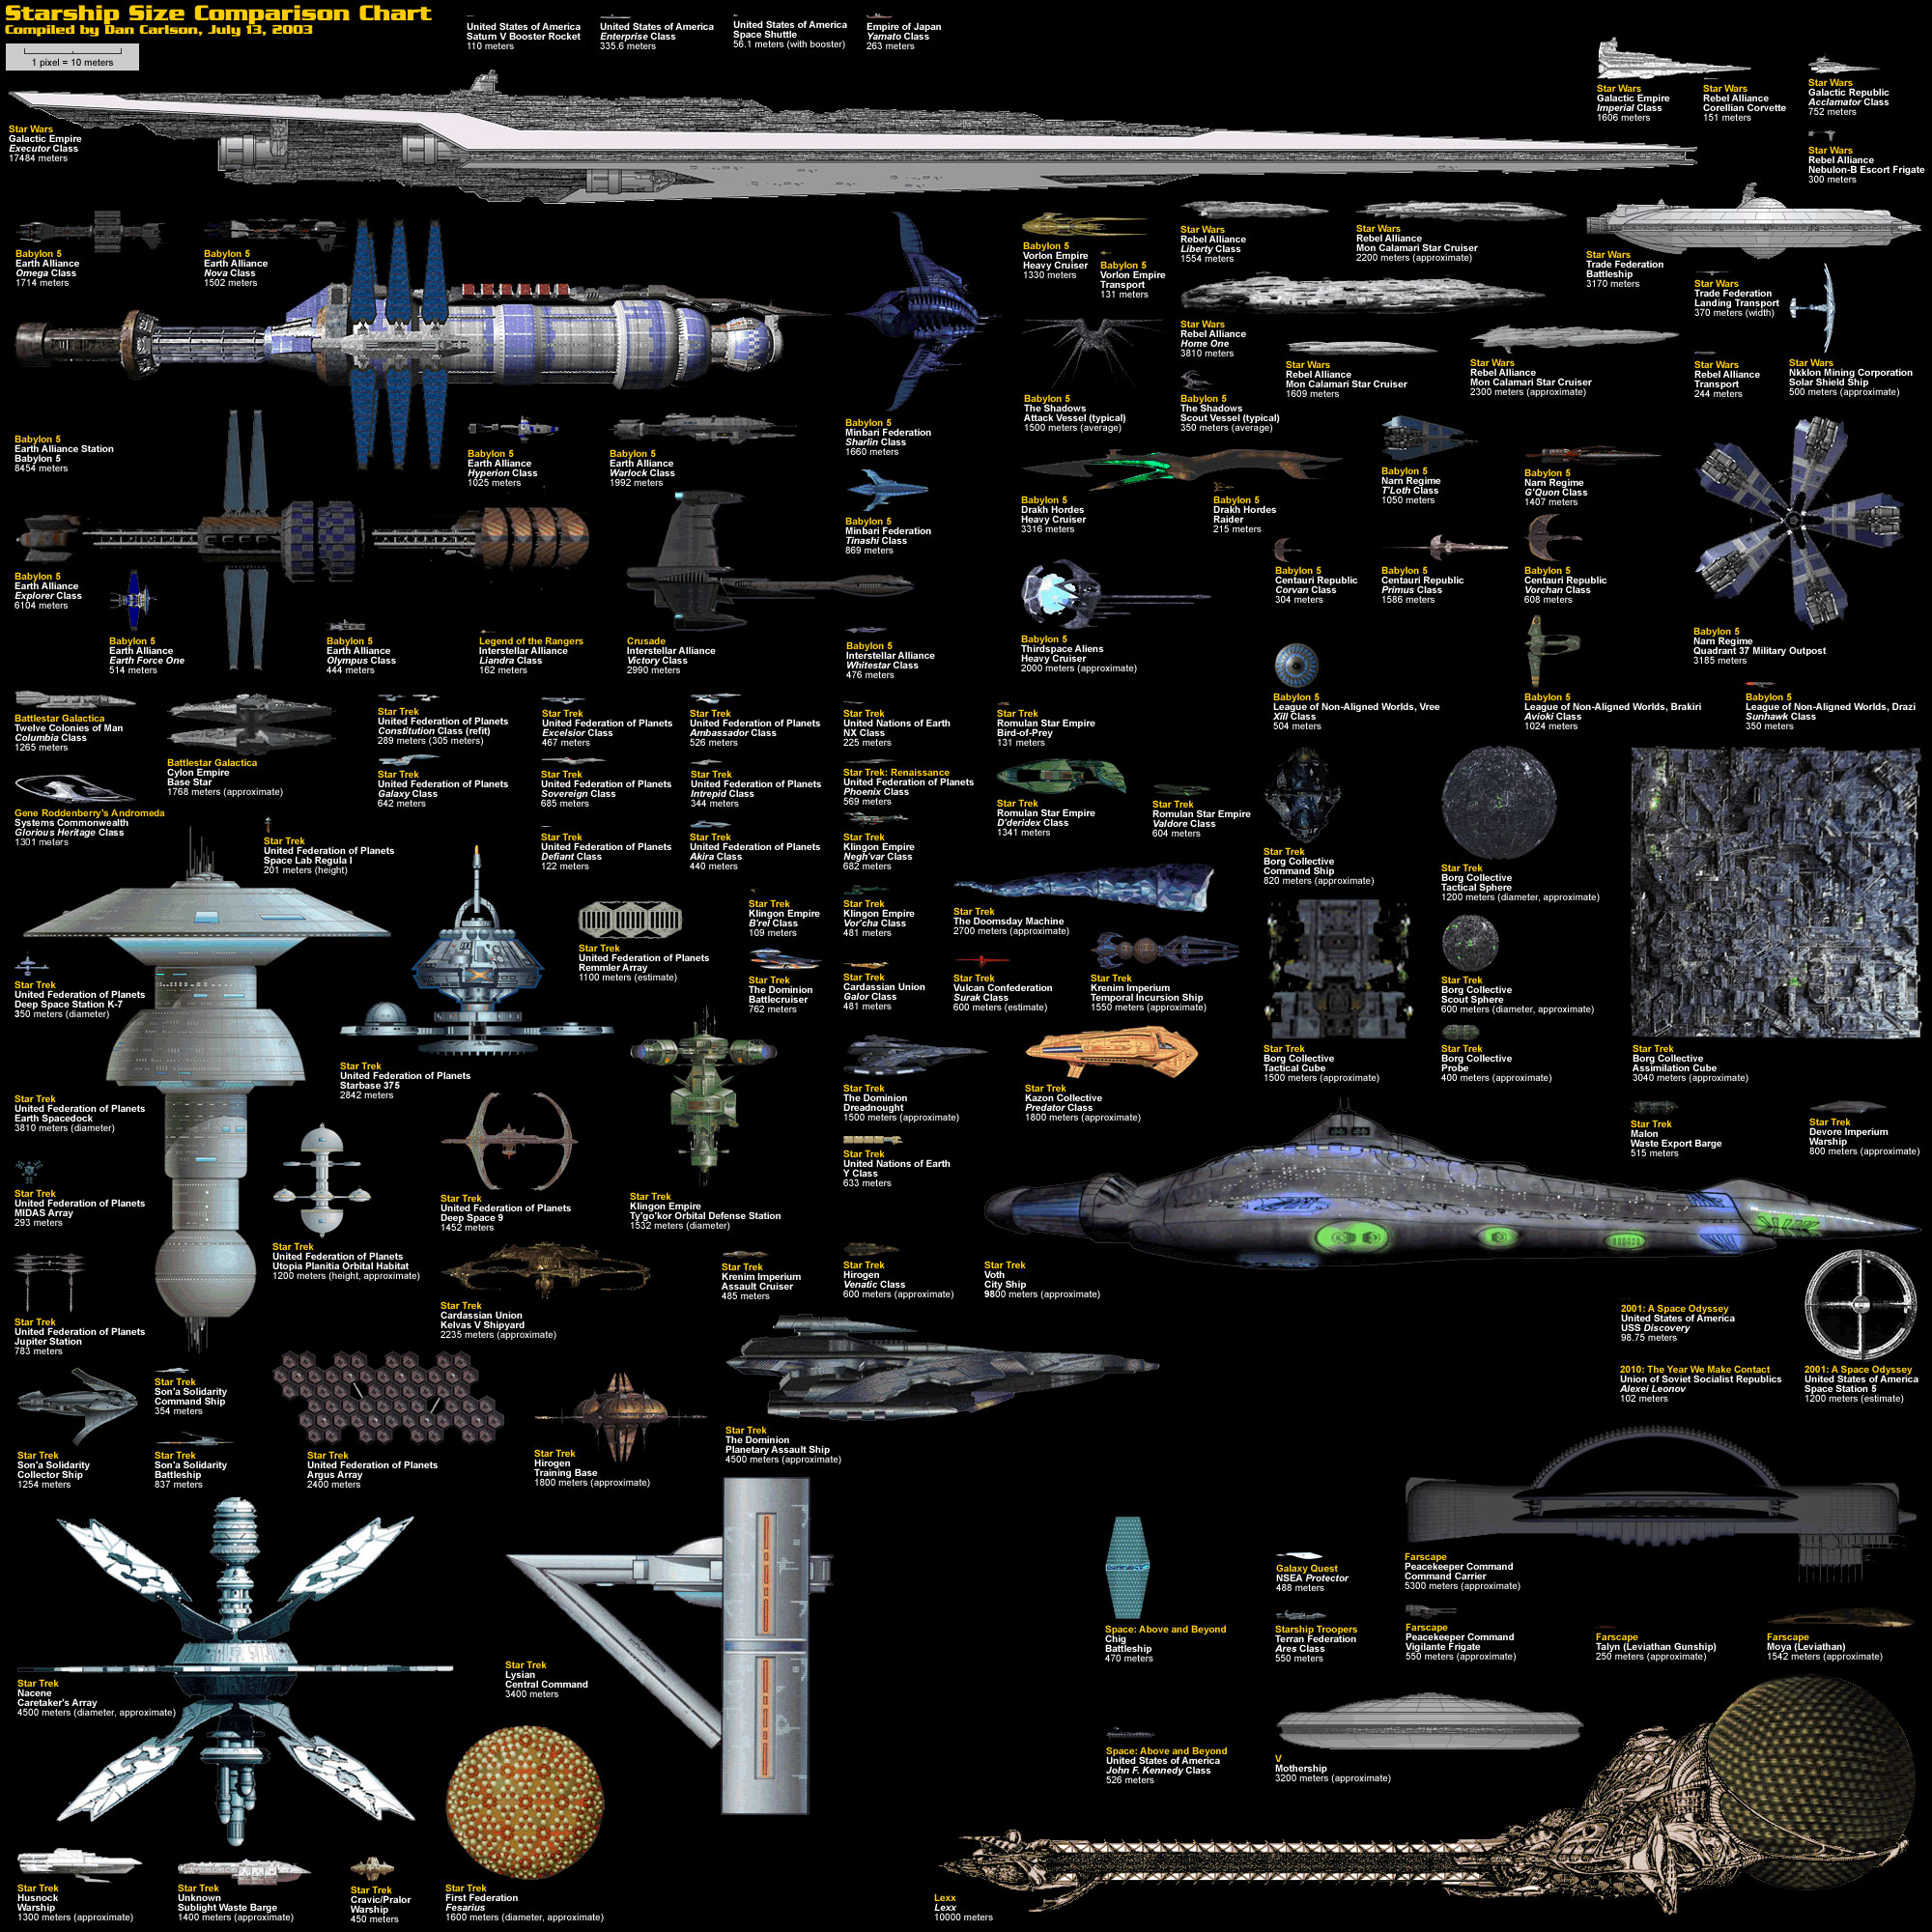 Spaceship Size Comparison - Click To View Image